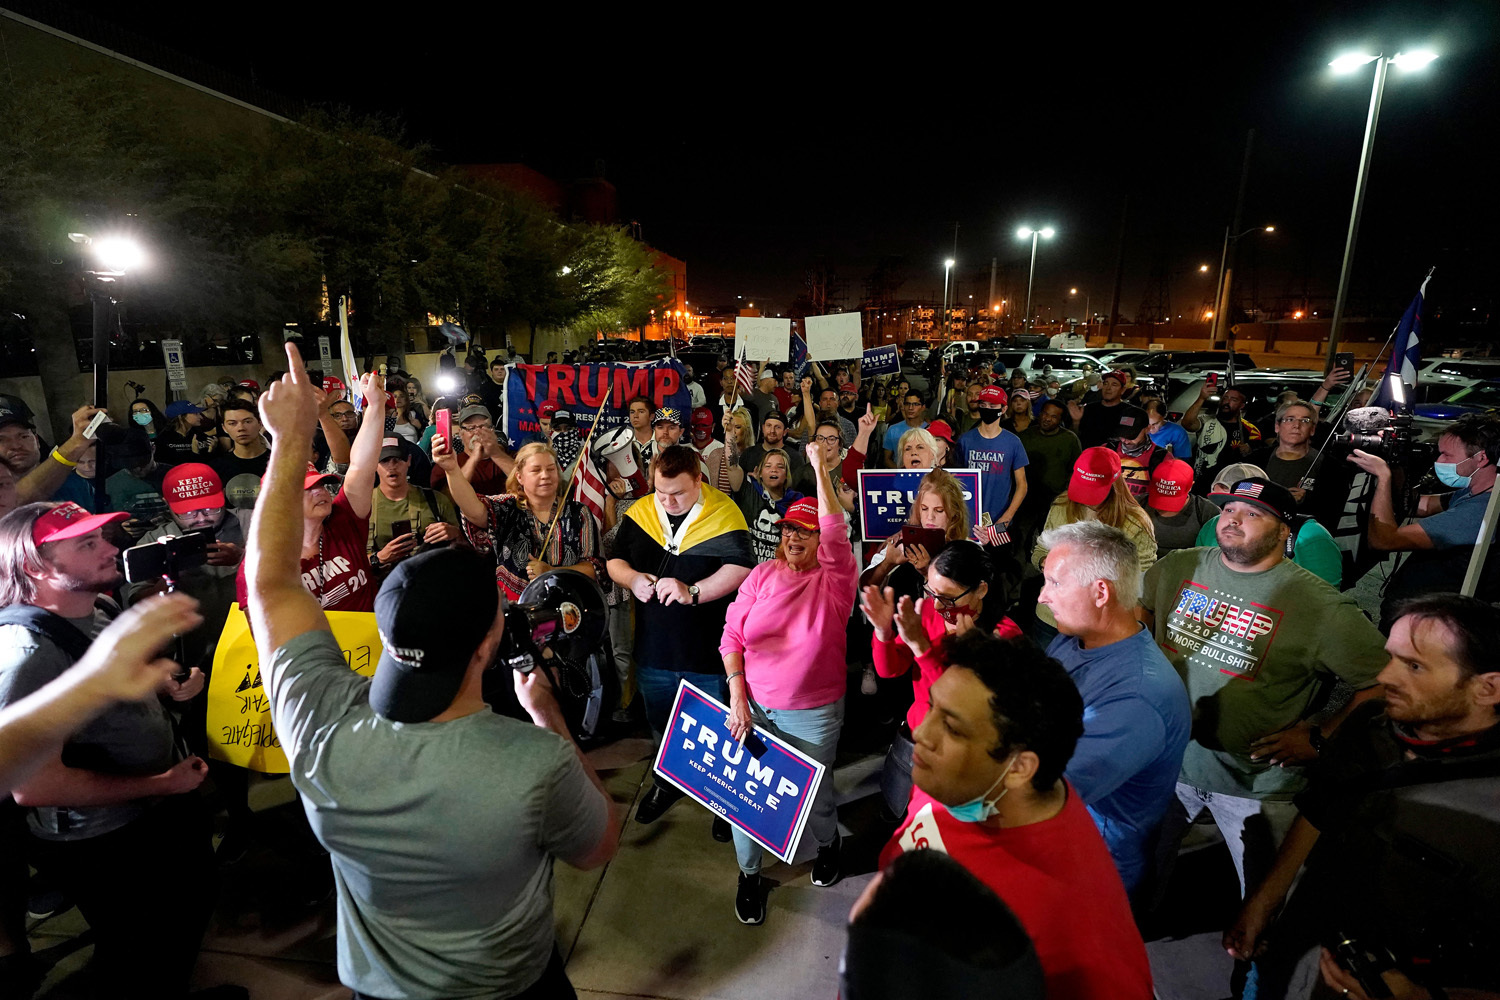 President Donald Trump supporters rally, outside the Maricopa County Recorders Office in Phoenix Election 2020 Protests